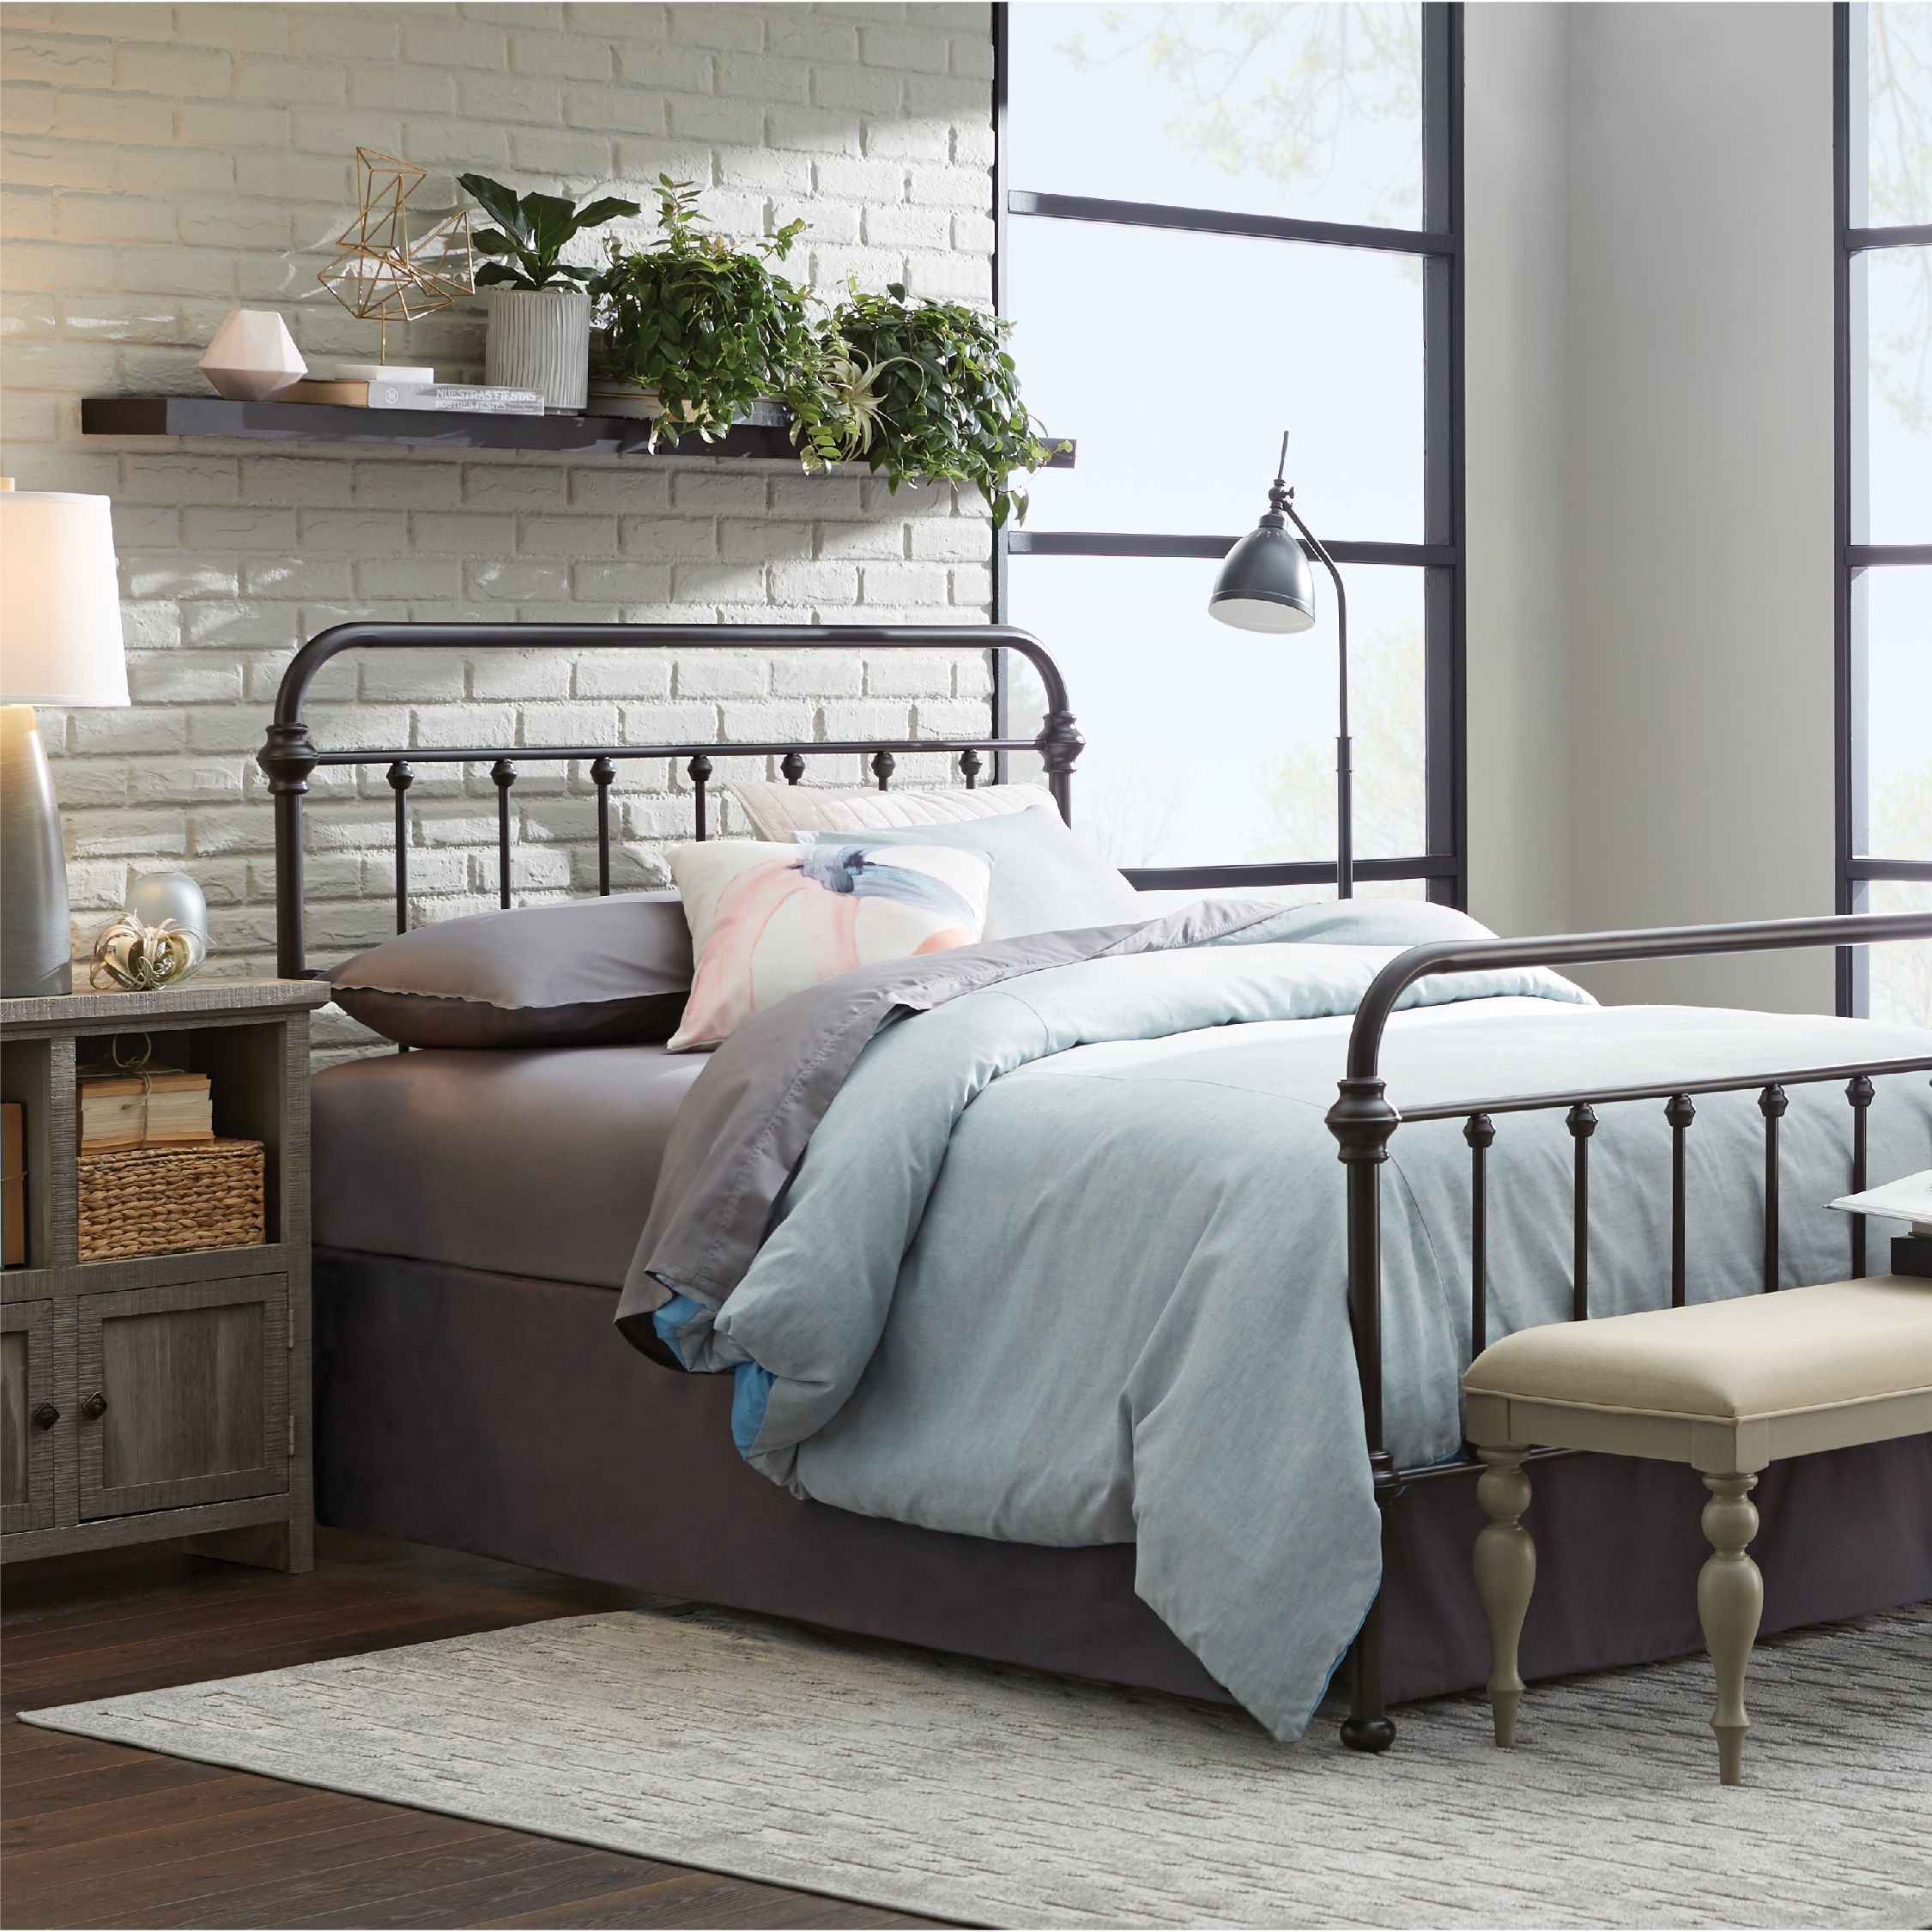 Design My Own Bedroom: Create Your Own Cozy Retreat With Help From The Laguna Bed